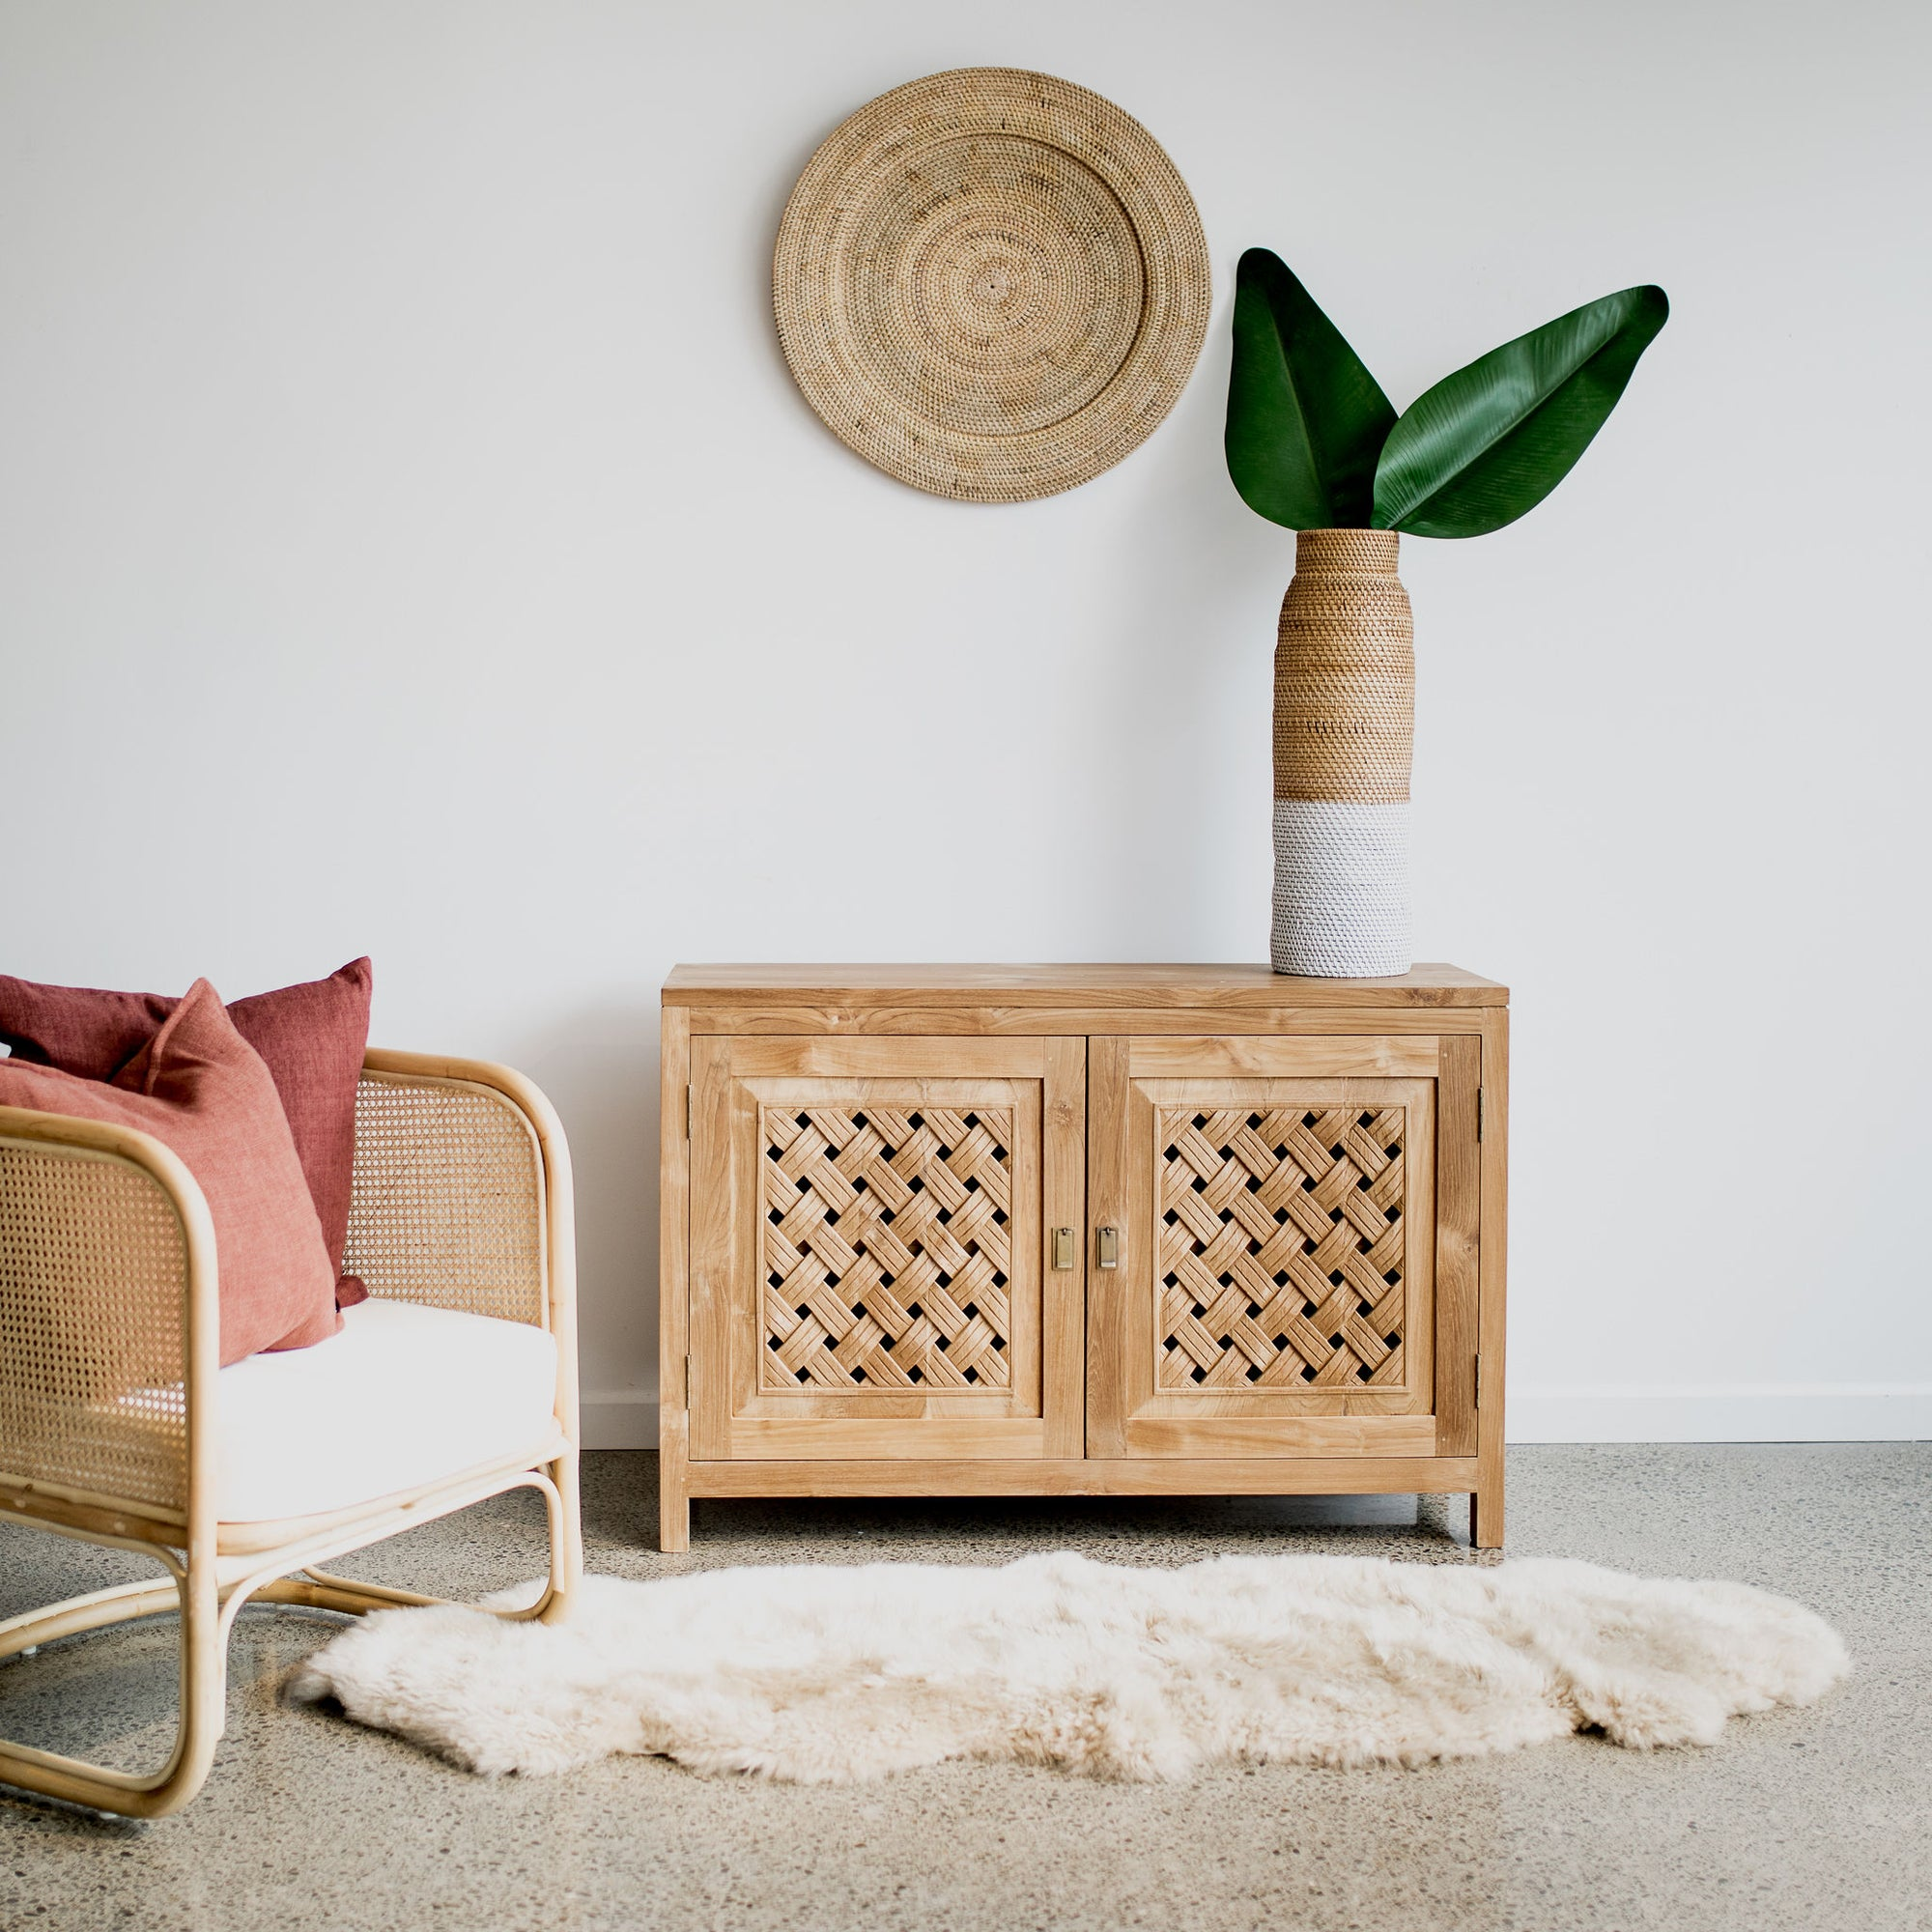 new zealand corcovado furniture and lighting store auckland christchurch wellington nz sheepskin sideboards and rattan furniture